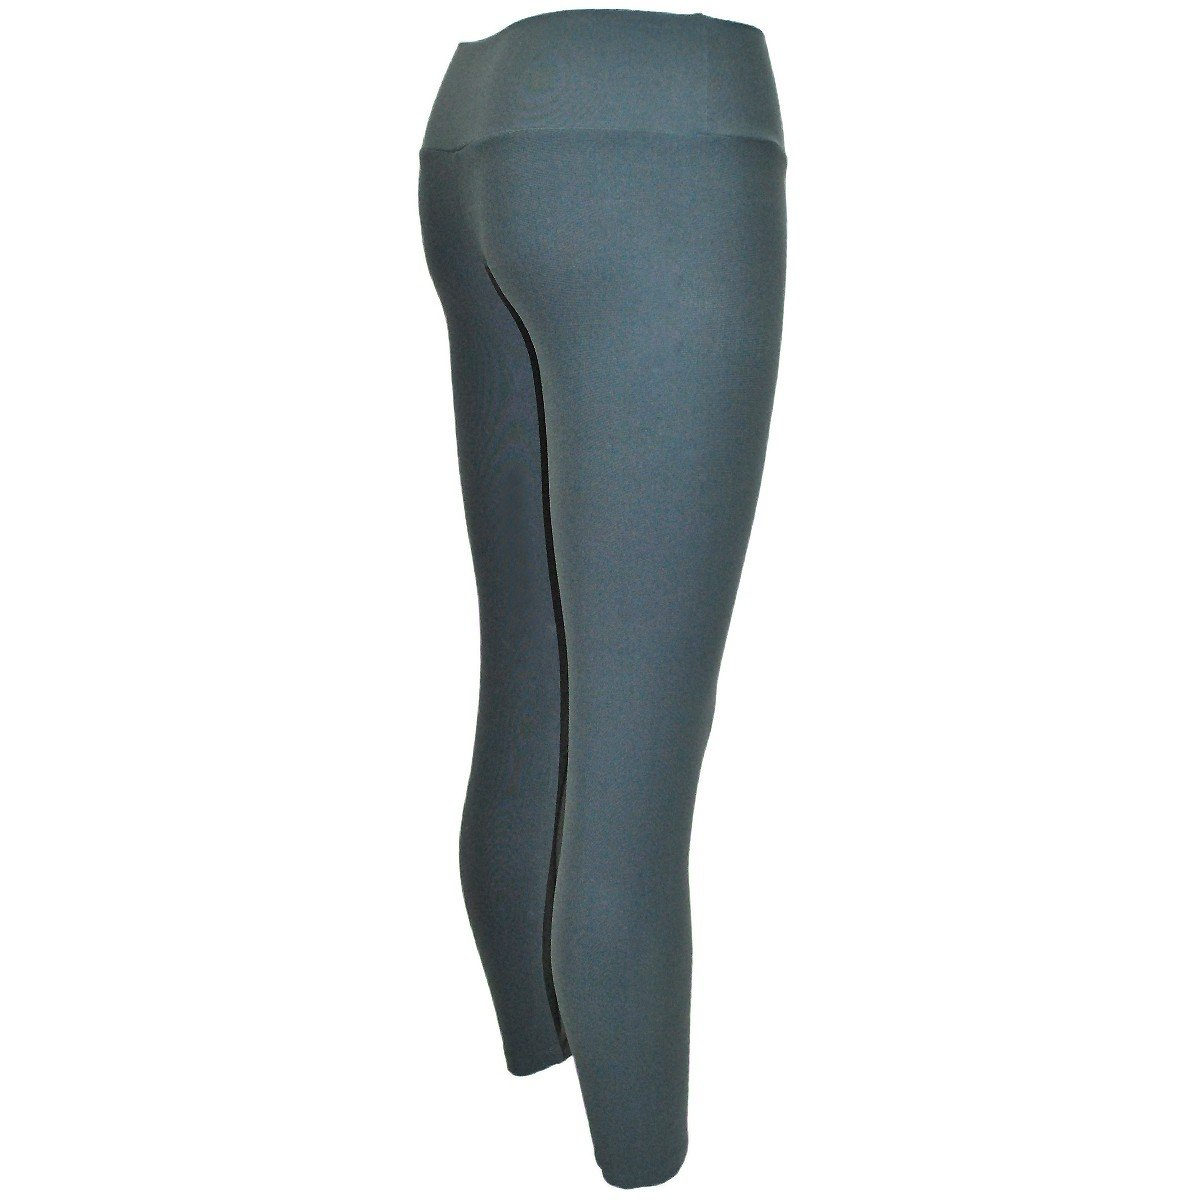 Live Em Legging Calca Active Legging Calca Chumbo qpn7w0at